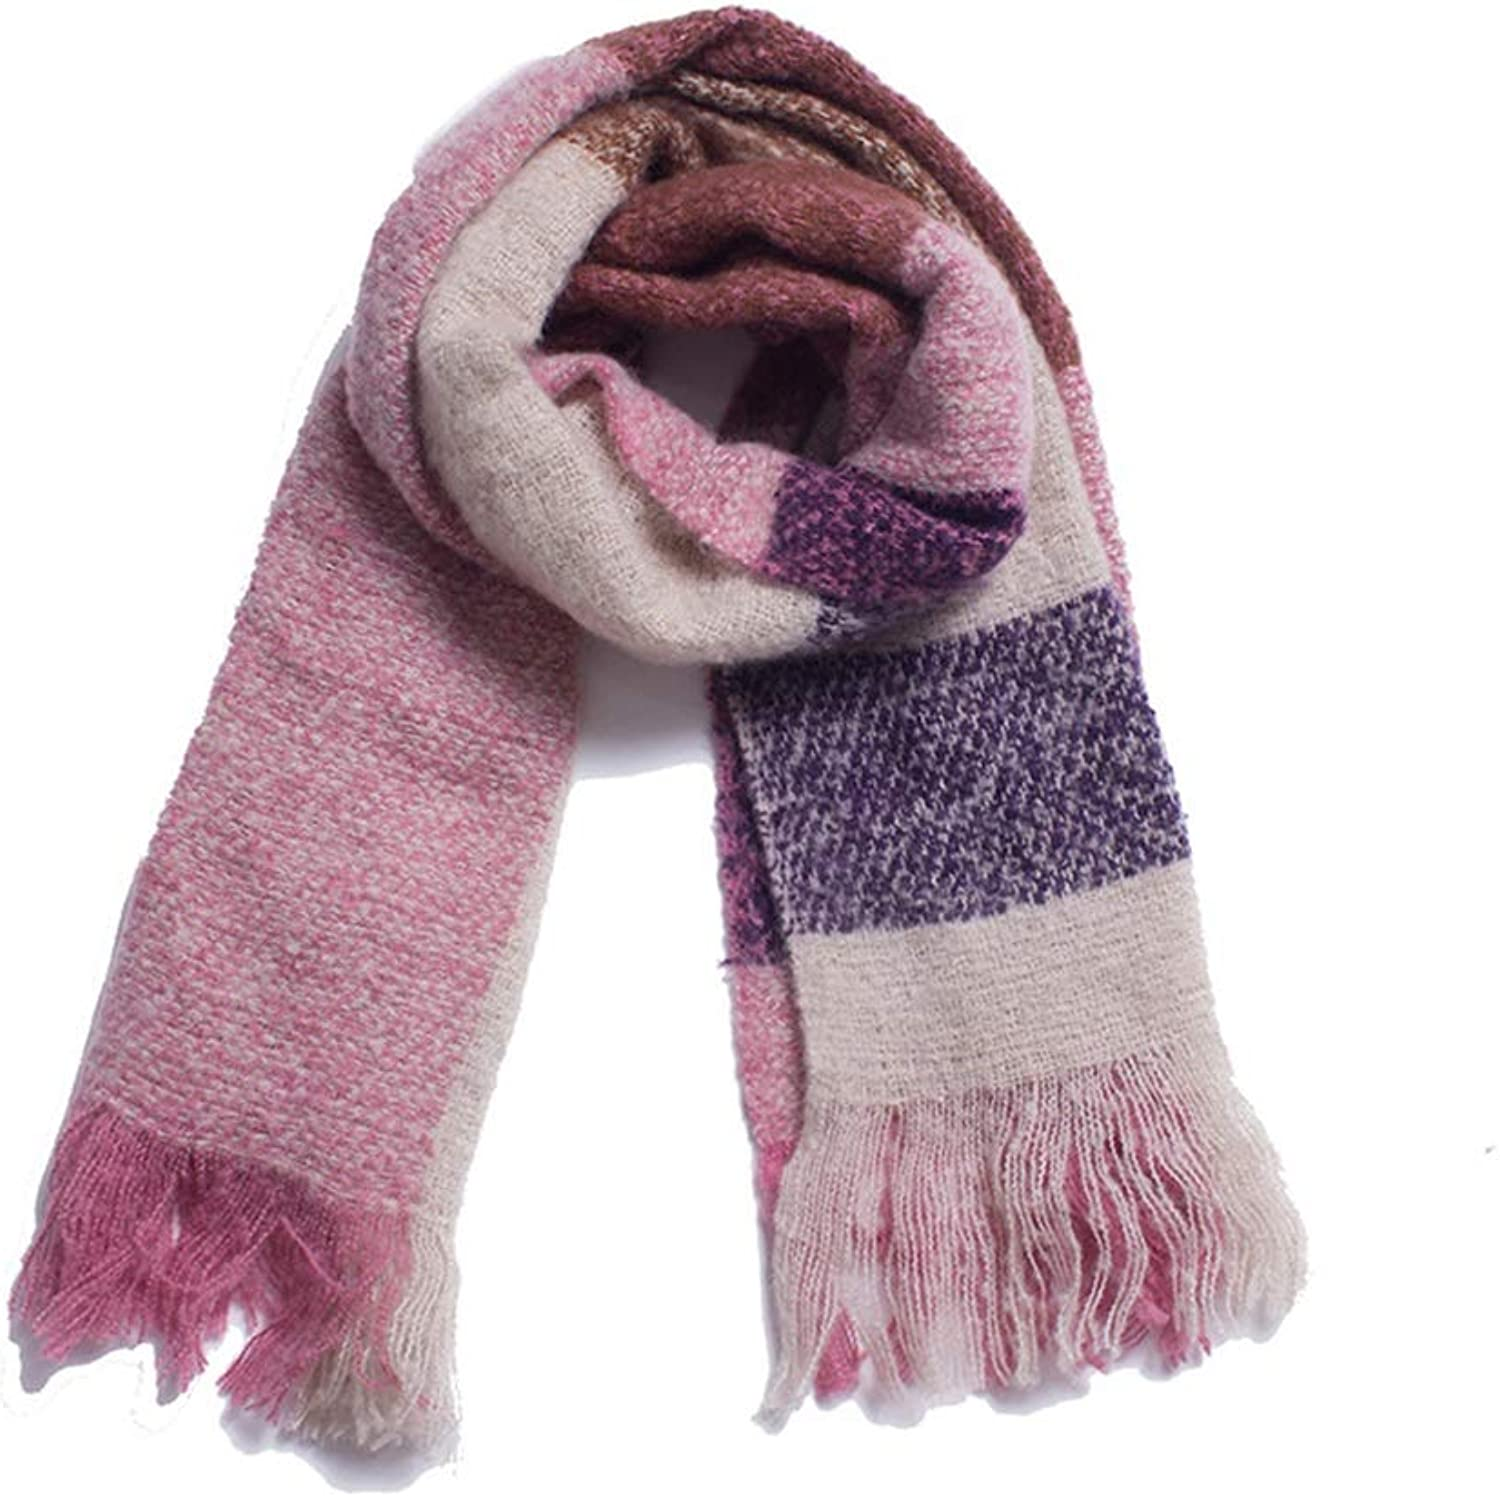 Women's Polyester Shawl Warm Scarf for Autumn and Winter (color   Pink)